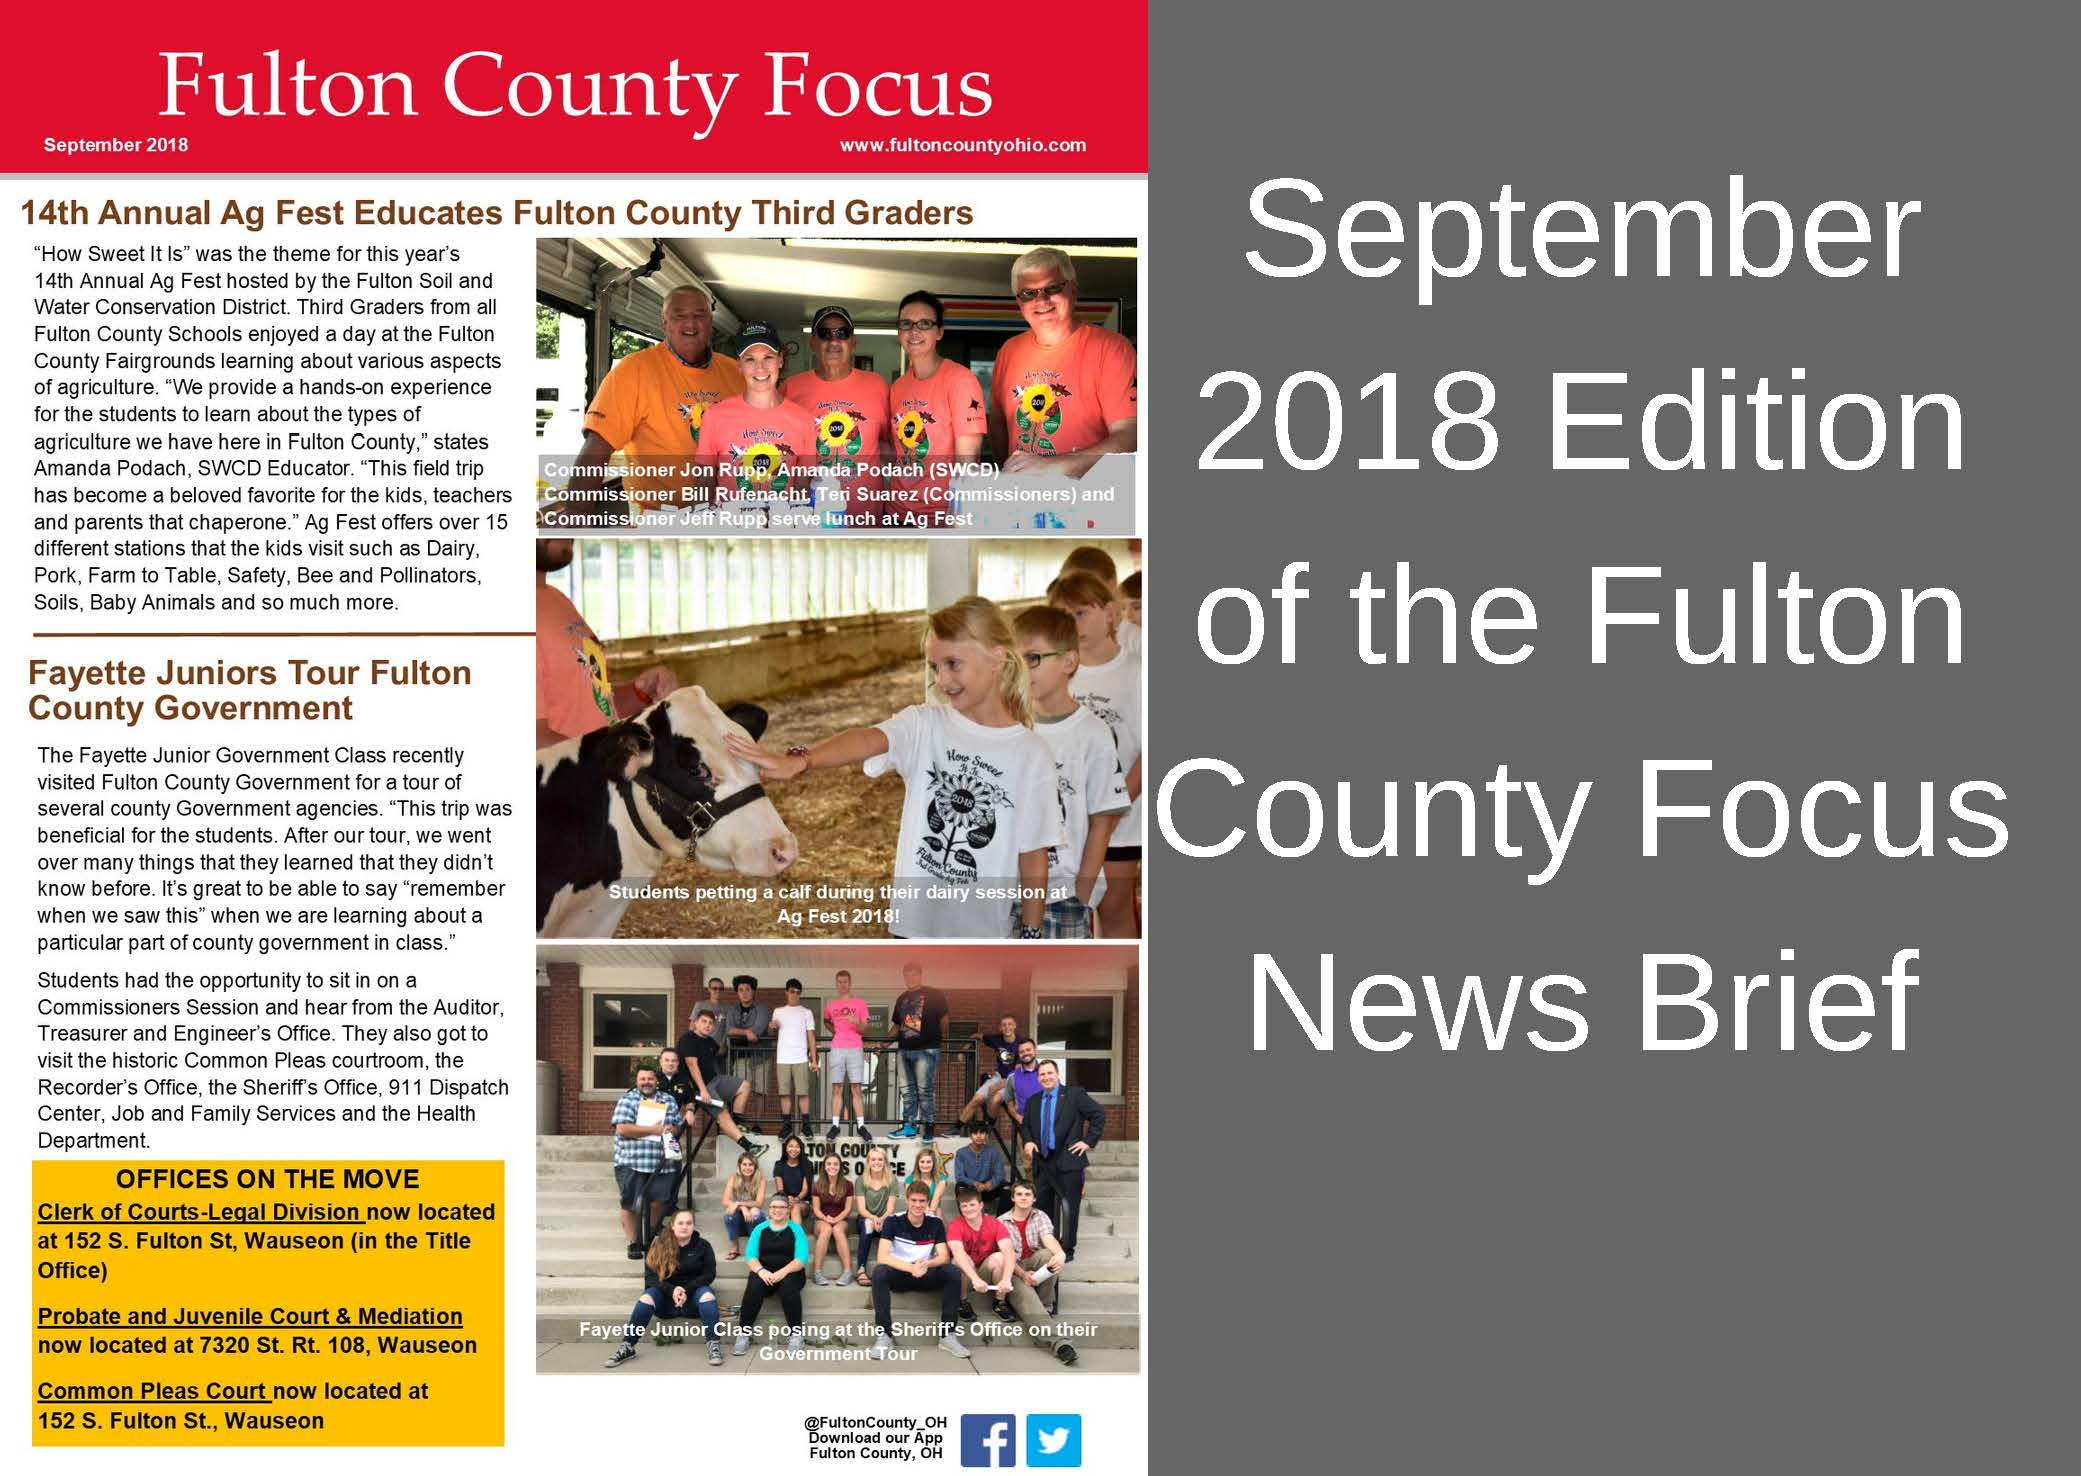 September 2018 Edition of the Fulton County Focus News Brief